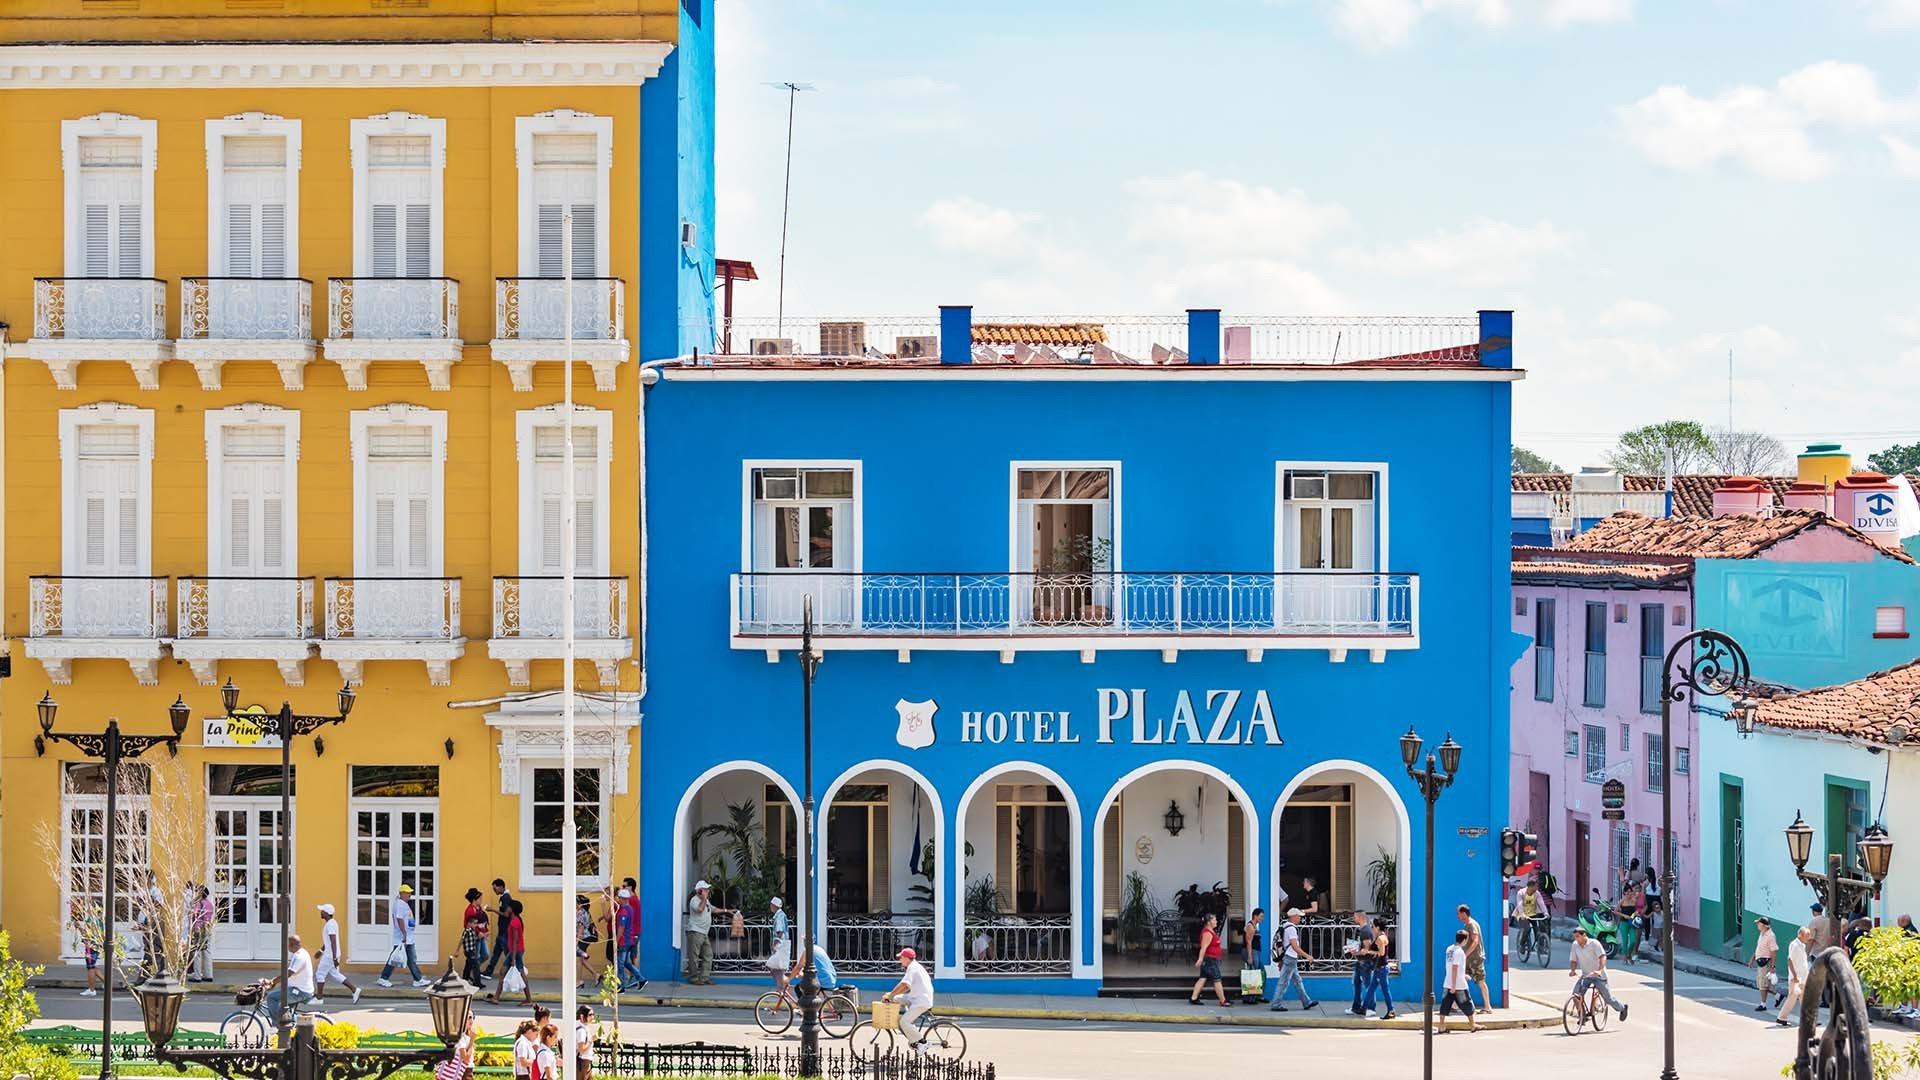 A hotel and square in Cuba